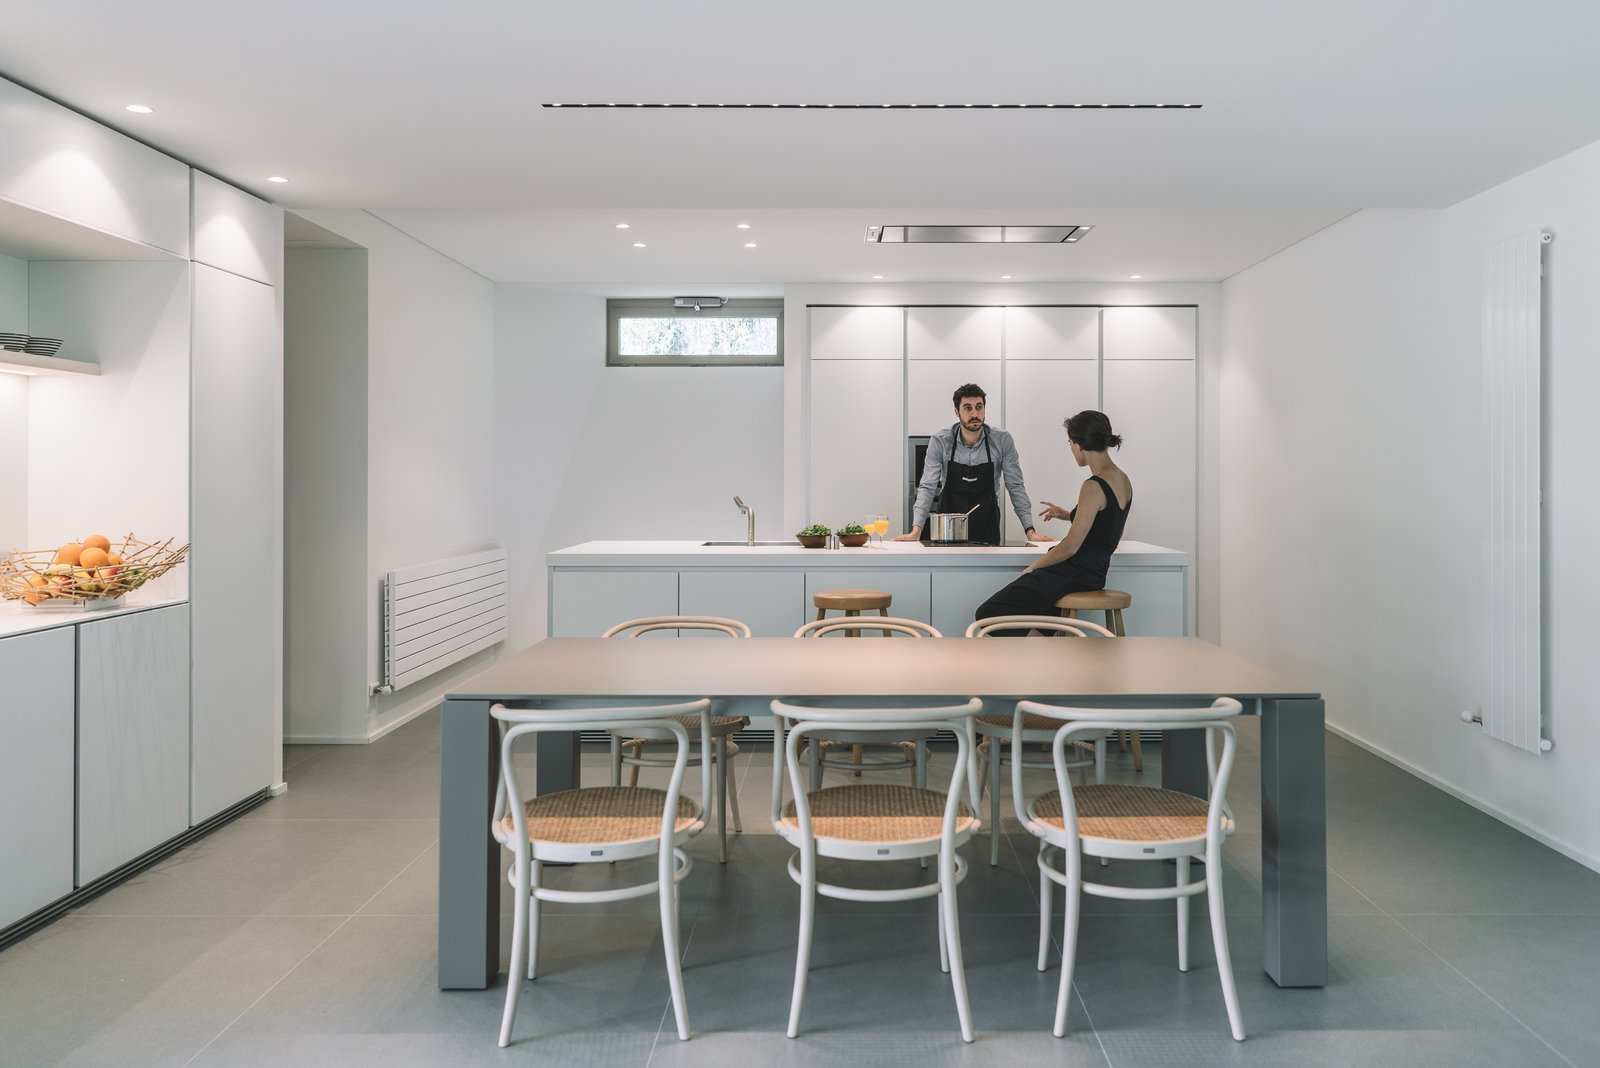 Tagged: Kitchen, Ceiling Lighting, White Cabinet, Porcelain Tile Floor, Laminate Counter, Wall Oven, and Drop In Sink.  The Öcher House by MLMR Architecture Consultancy